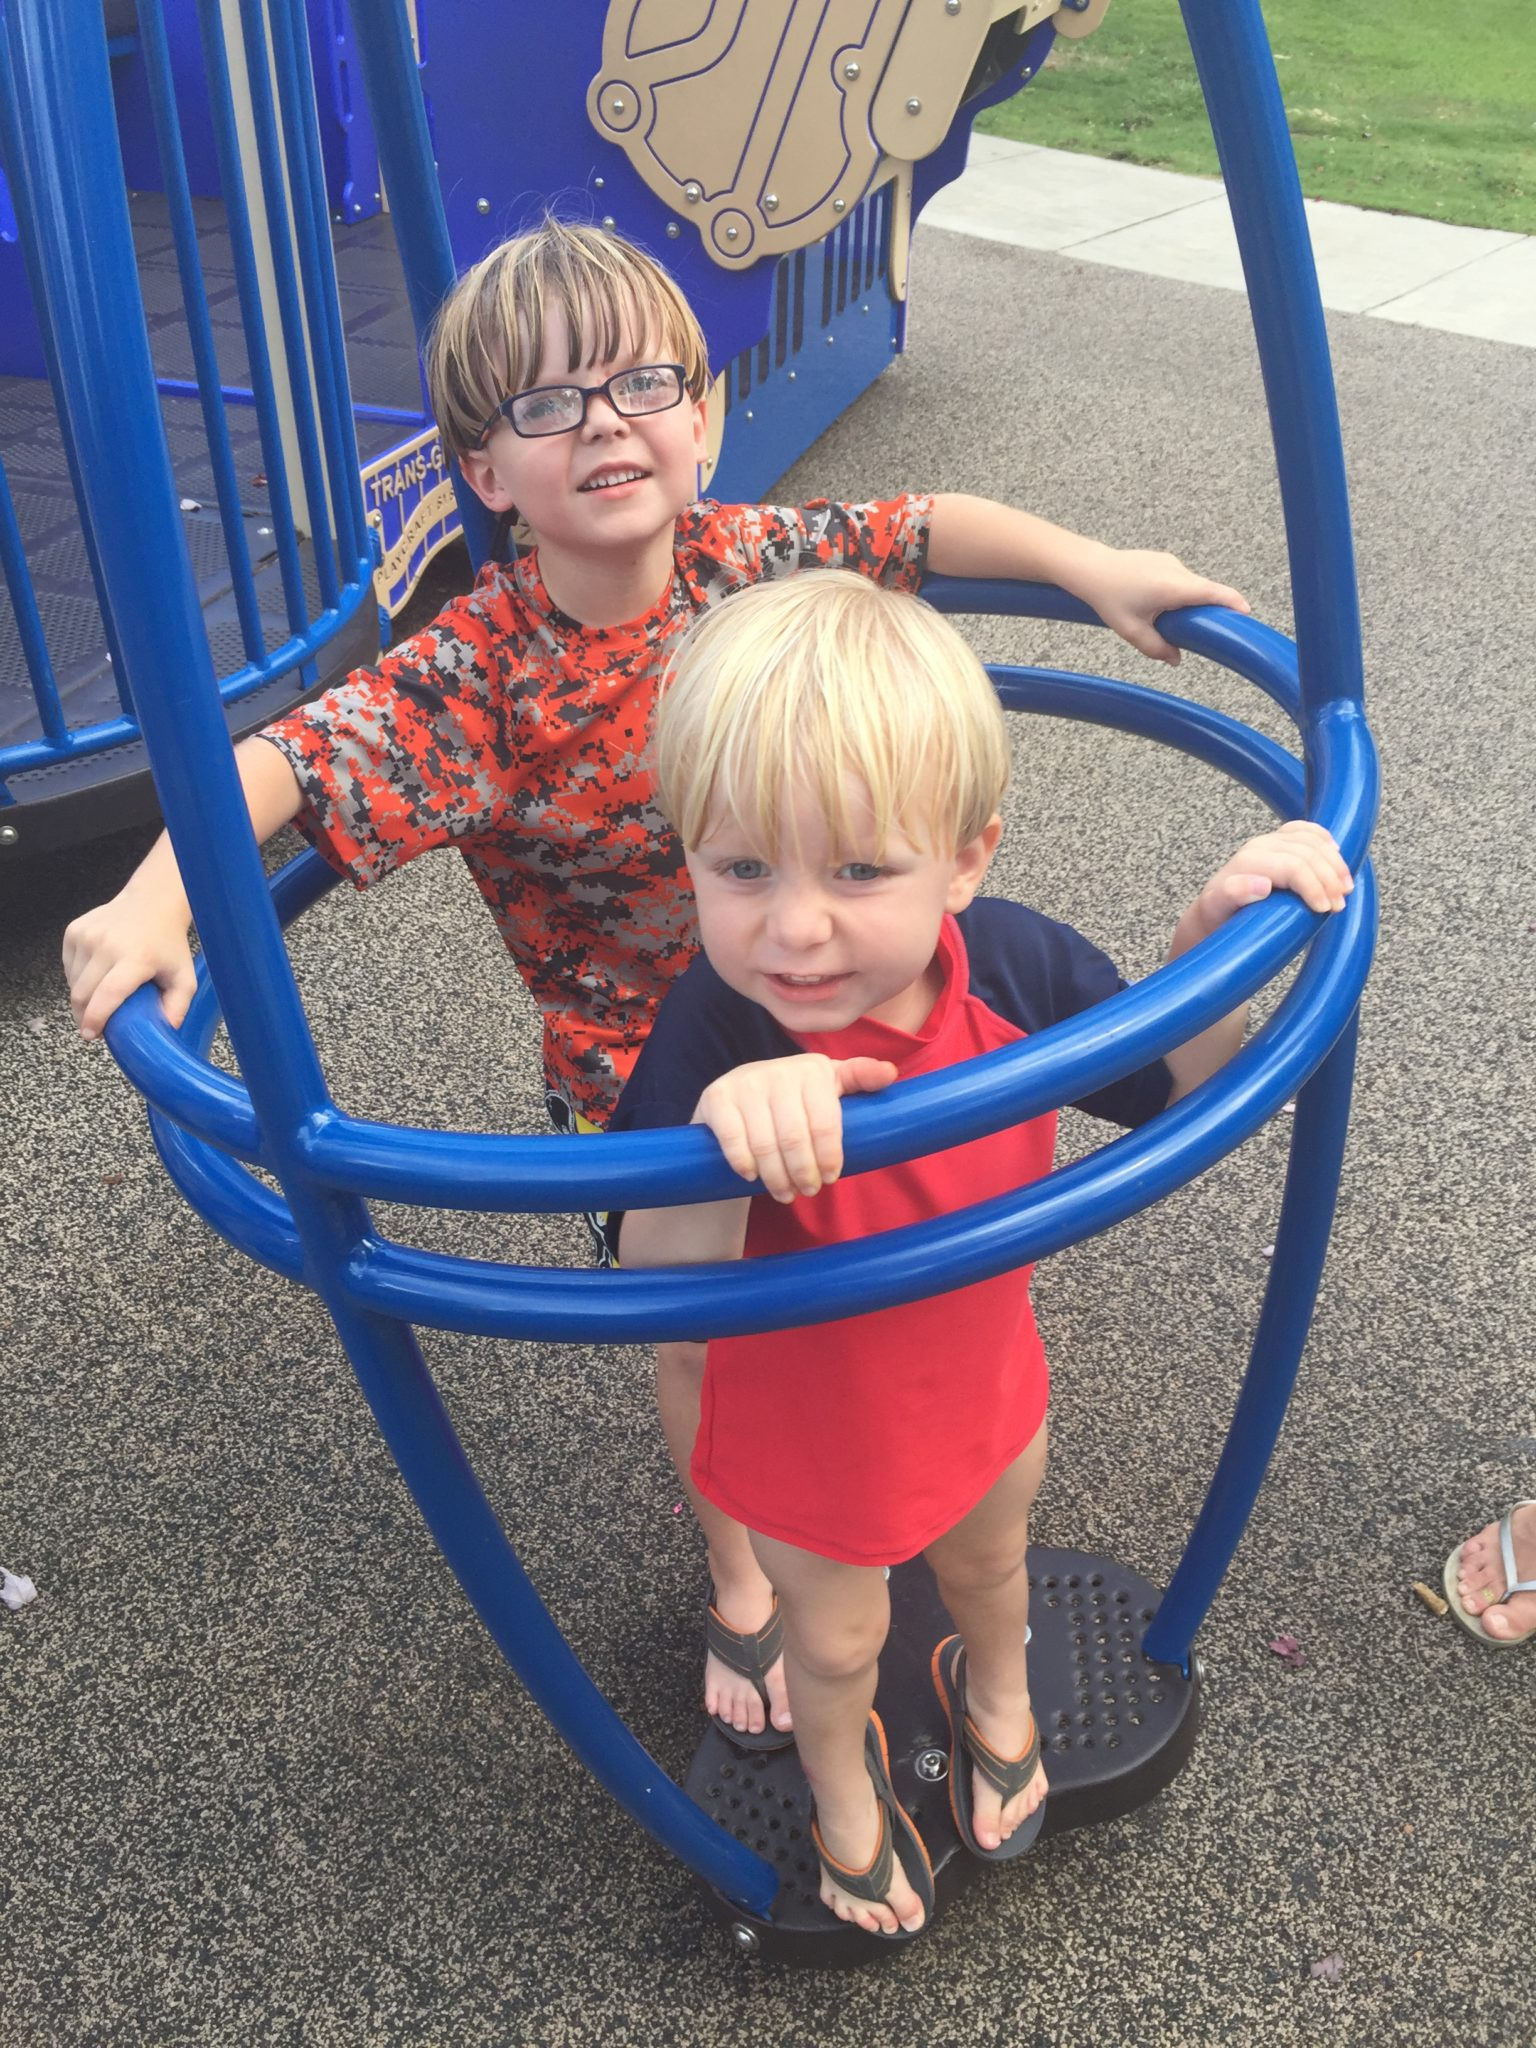 At the Fairhope Park with Ireland and Graydon